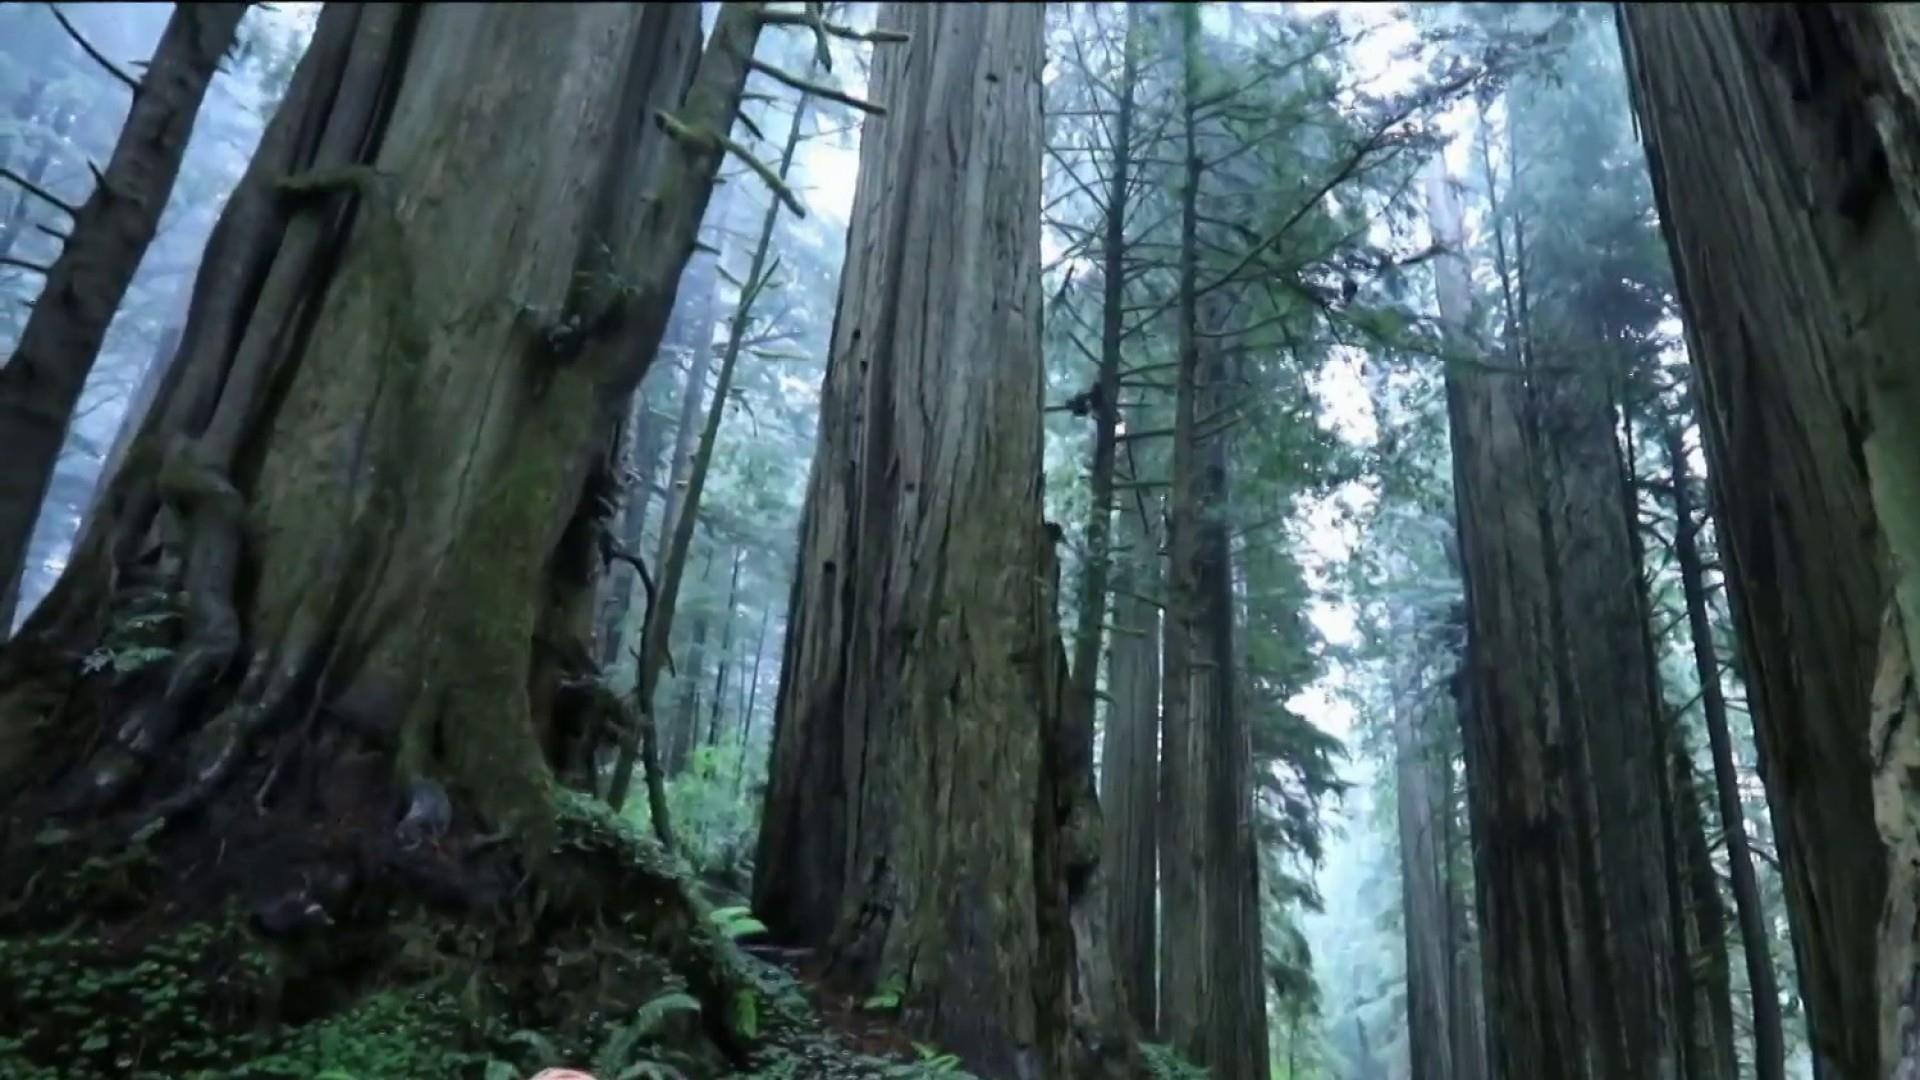 Cloning giant redwoods could help combat climate change